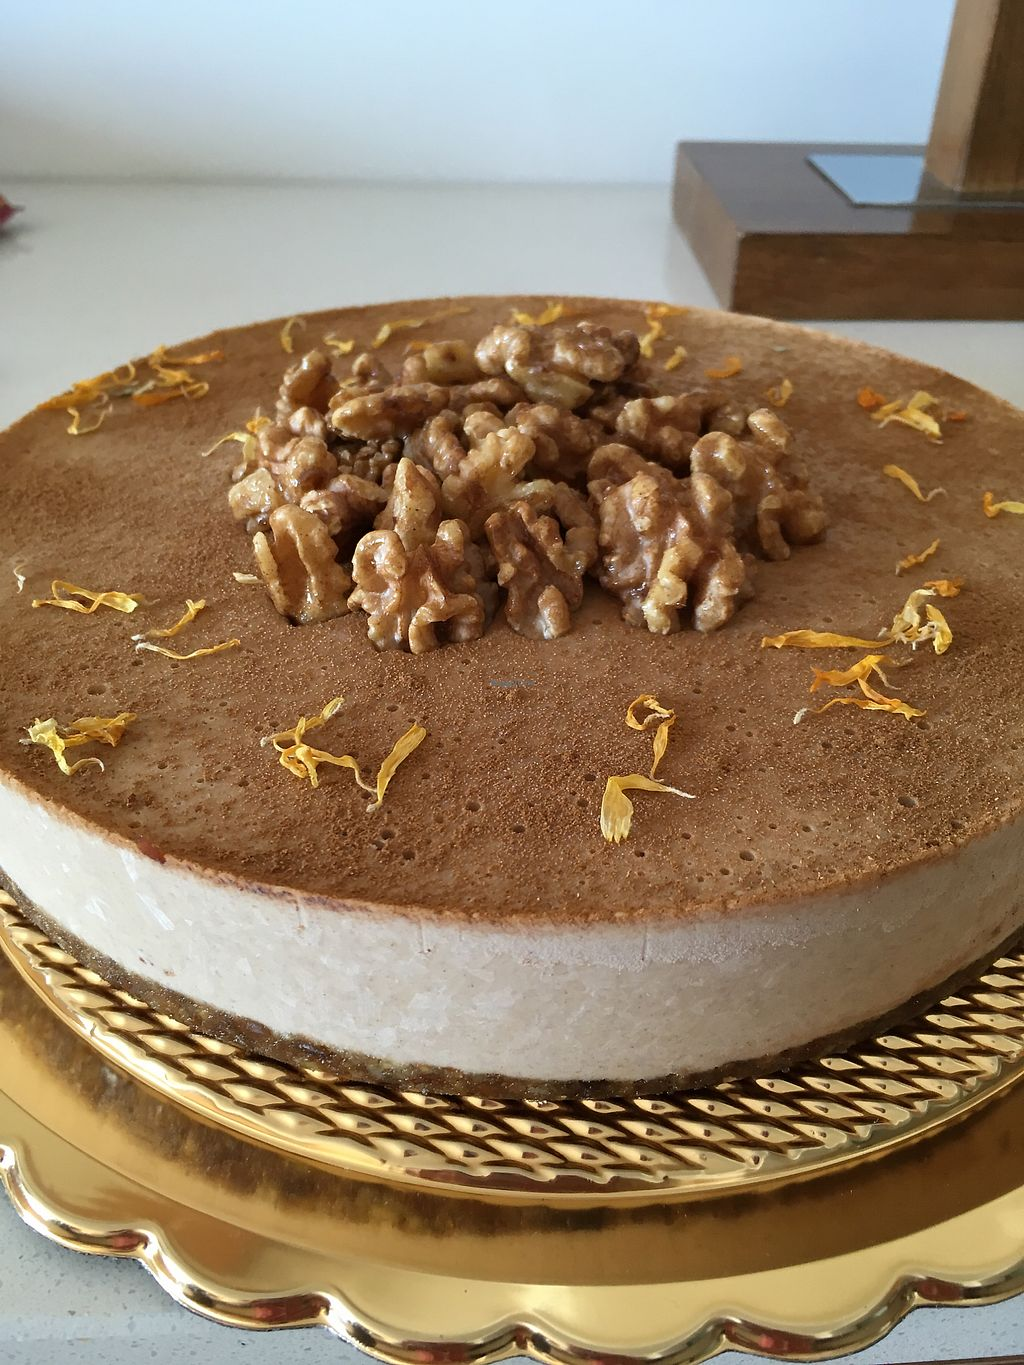 """Photo of Jo's Delights  by <a href=""""/members/profile/monisonfire"""">monisonfire</a> <br/>cinnamon & candied walnut cake <br/> January 7, 2018  - <a href='/contact/abuse/image/68122/344065'>Report</a>"""